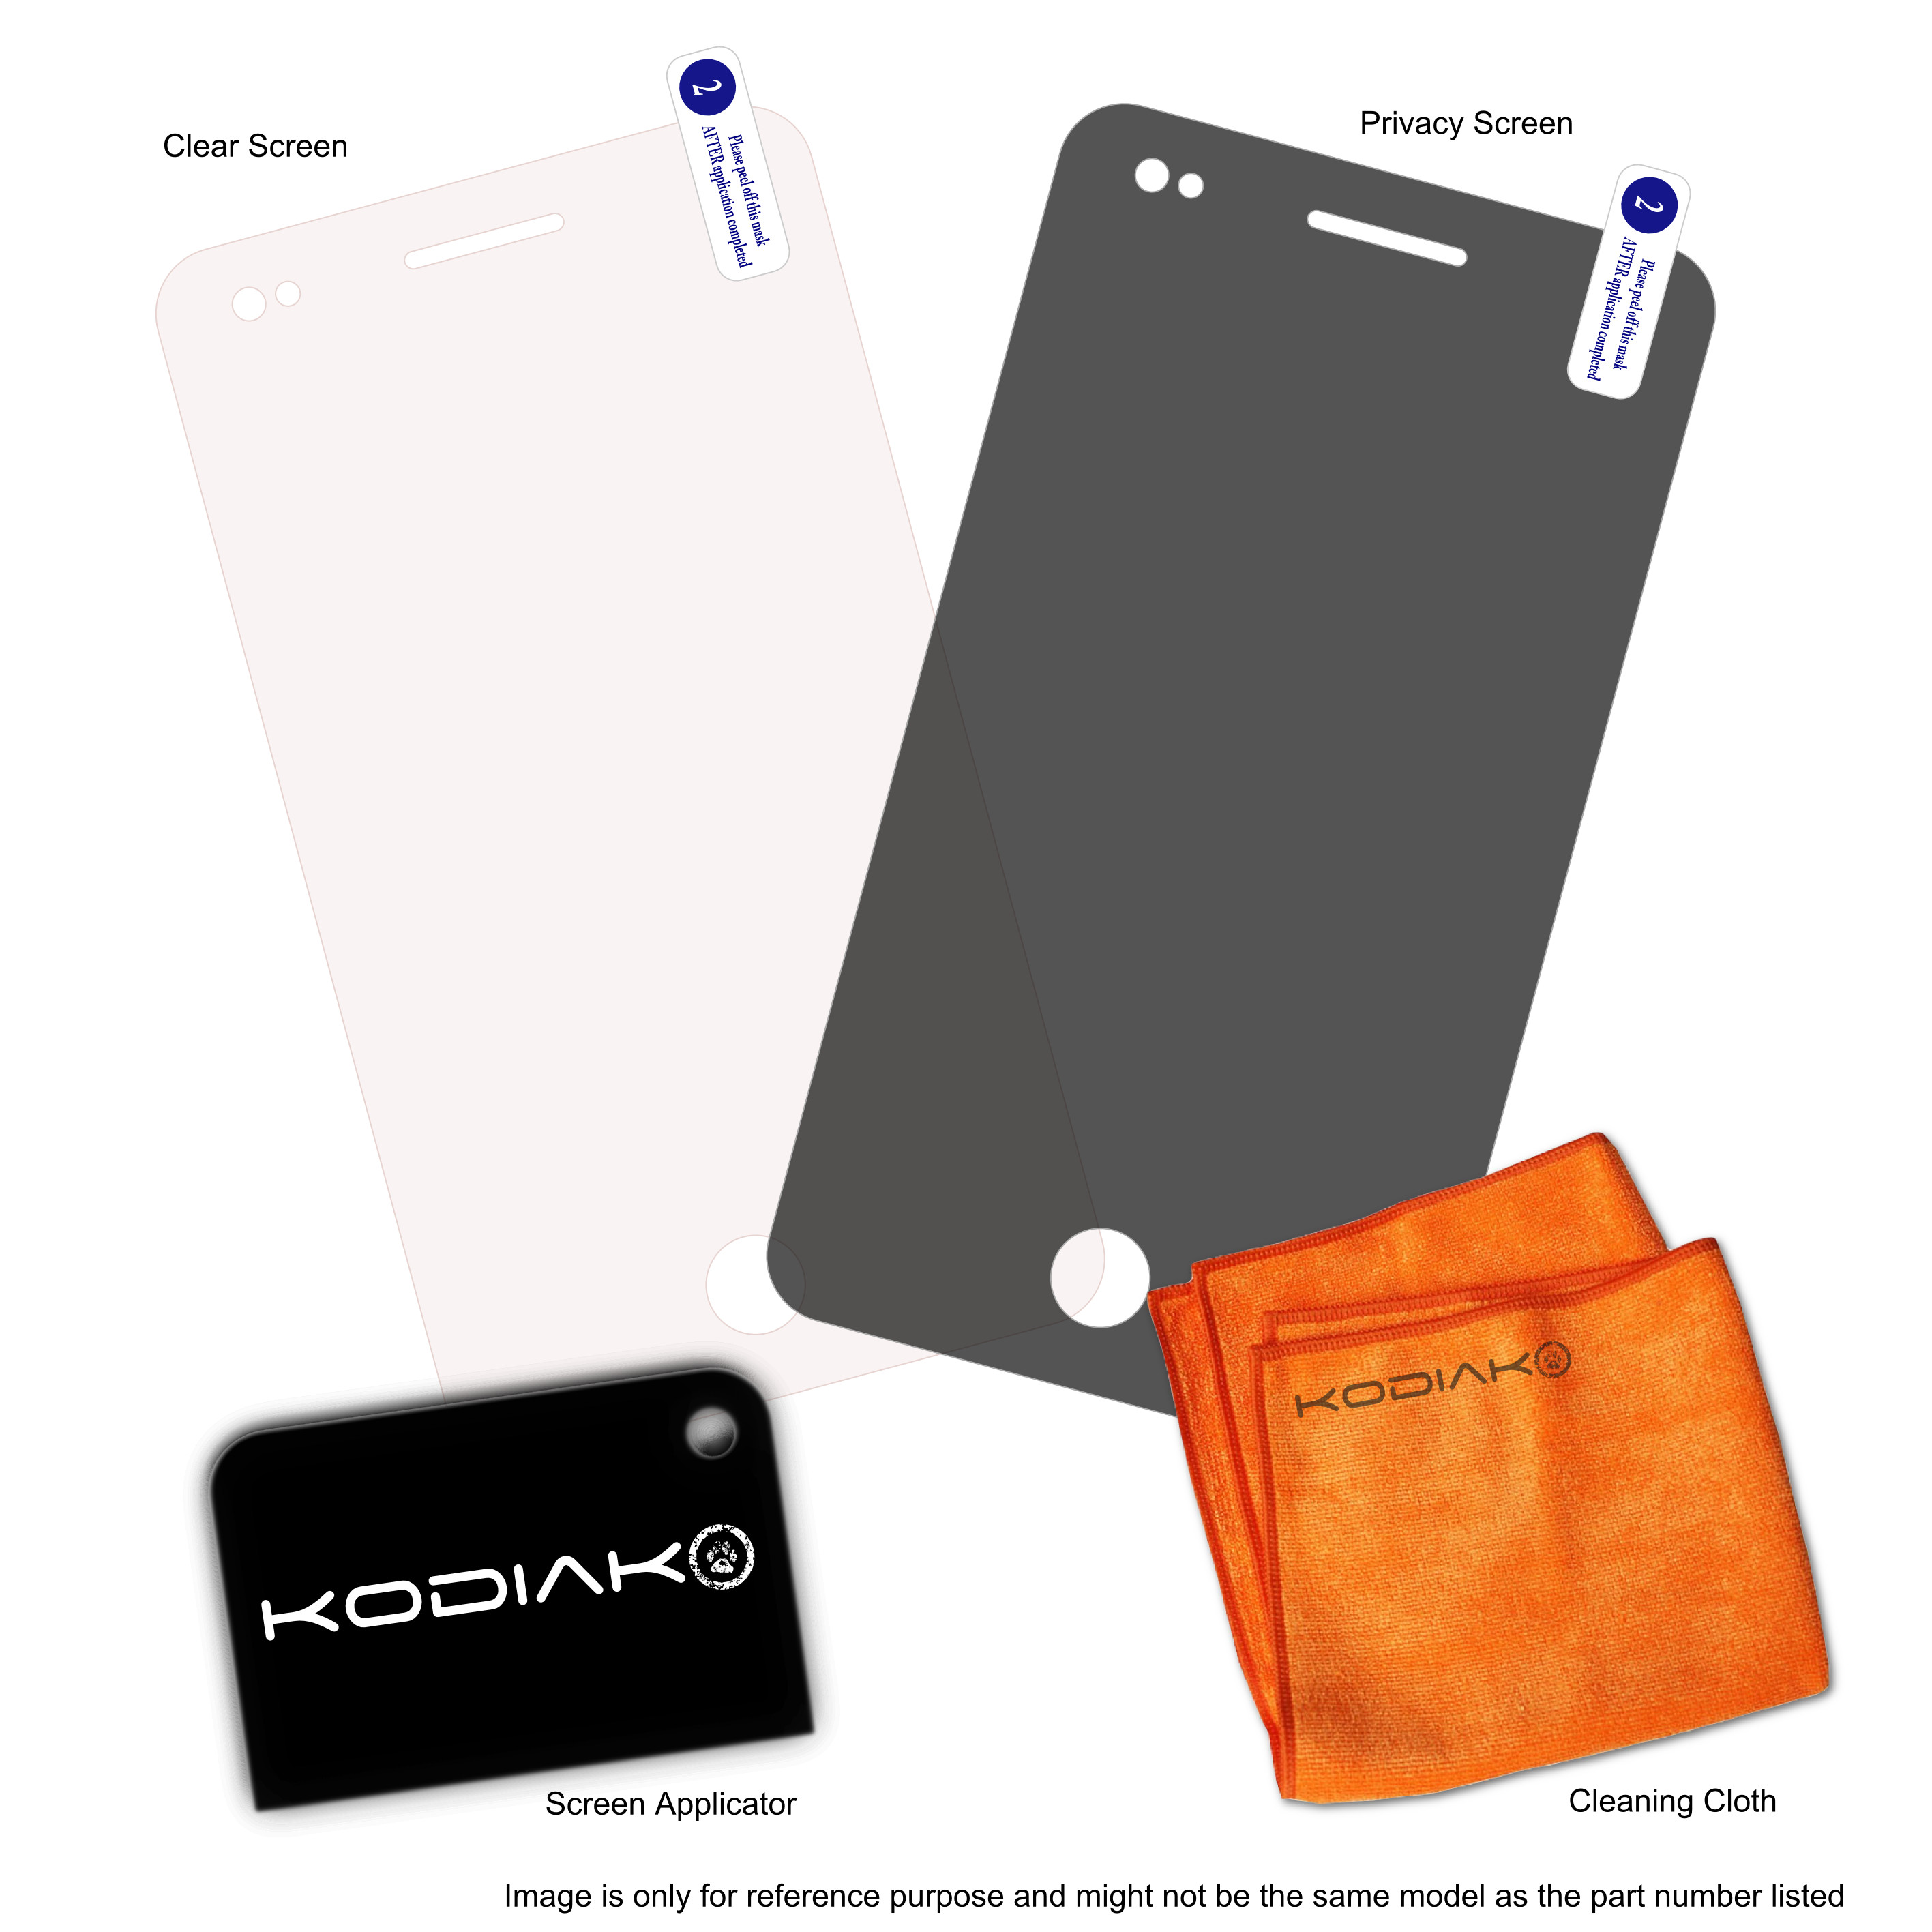 Original Kodiak Screen Protector Sony Xperia ZL iProtect 2-Package (Clear + Privacy)